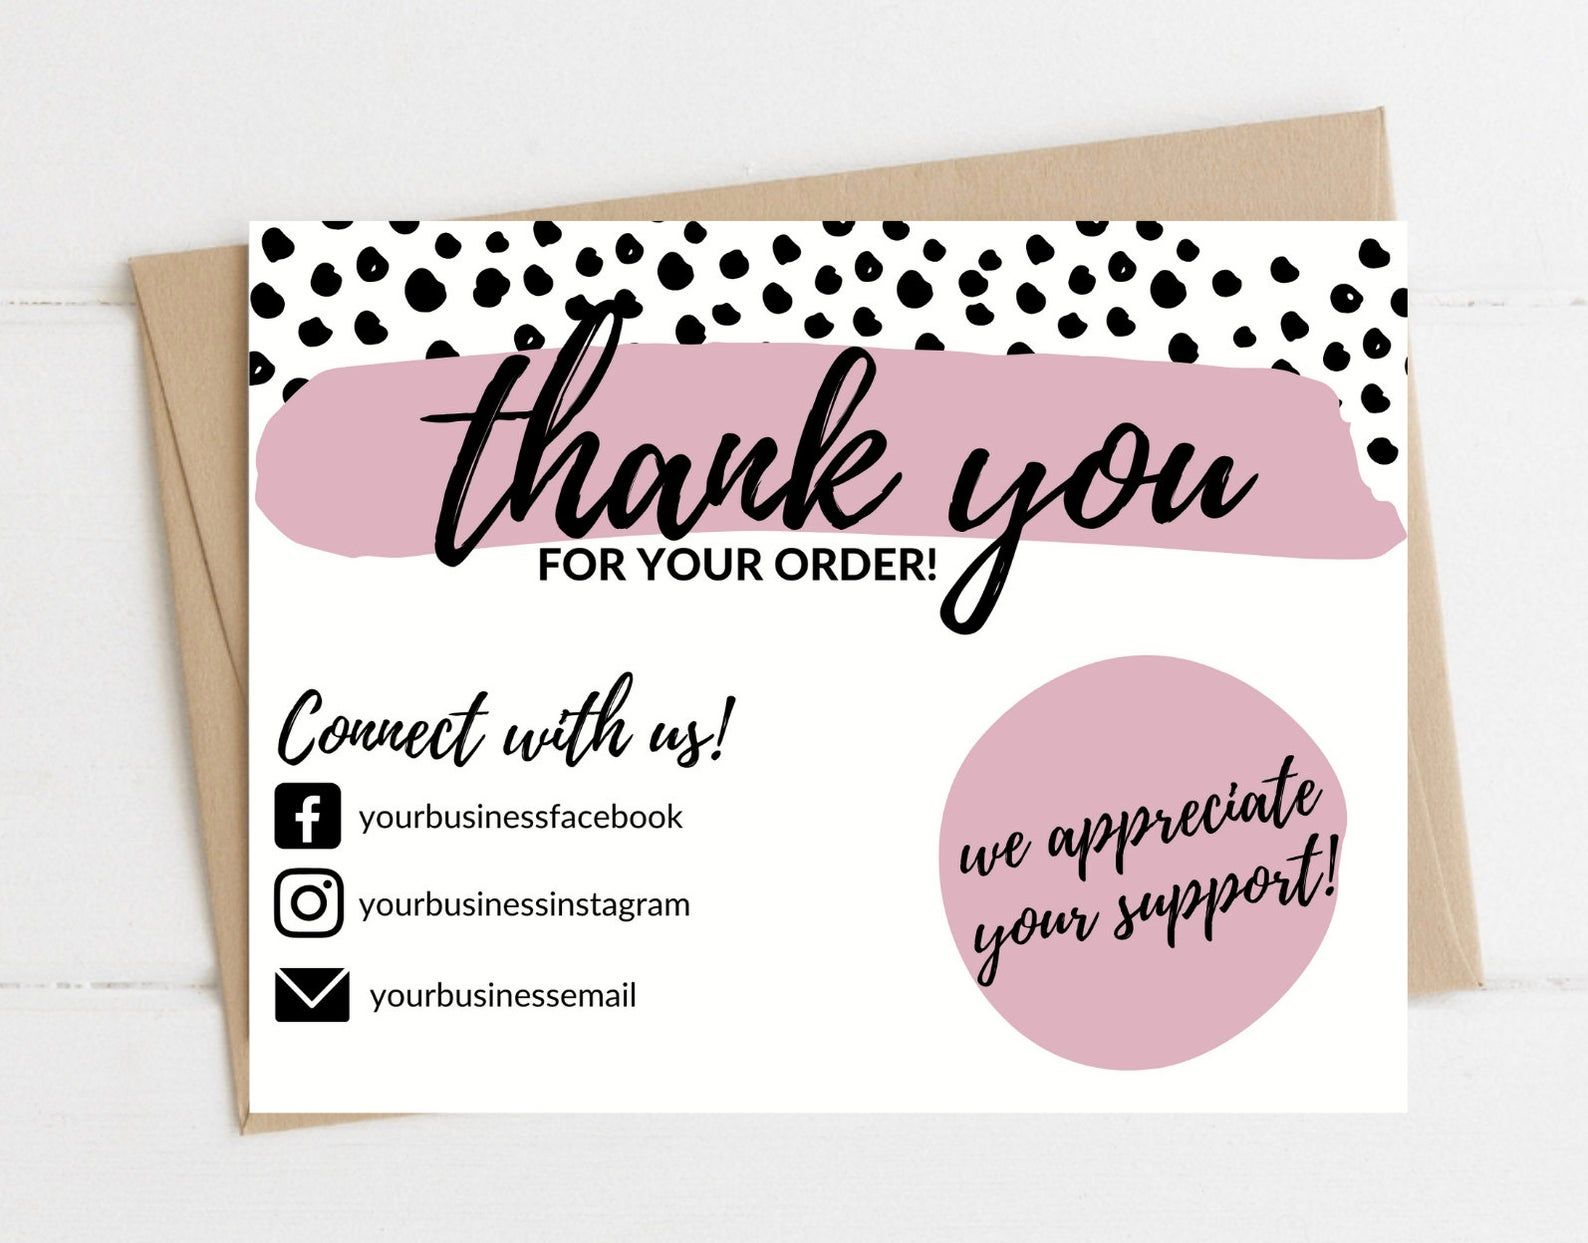 Instant Download Thank You Card Editable And Printable Thank Etsy In 2021 Printable Thank You Cards Business Thank You Cards Thank You Card Design